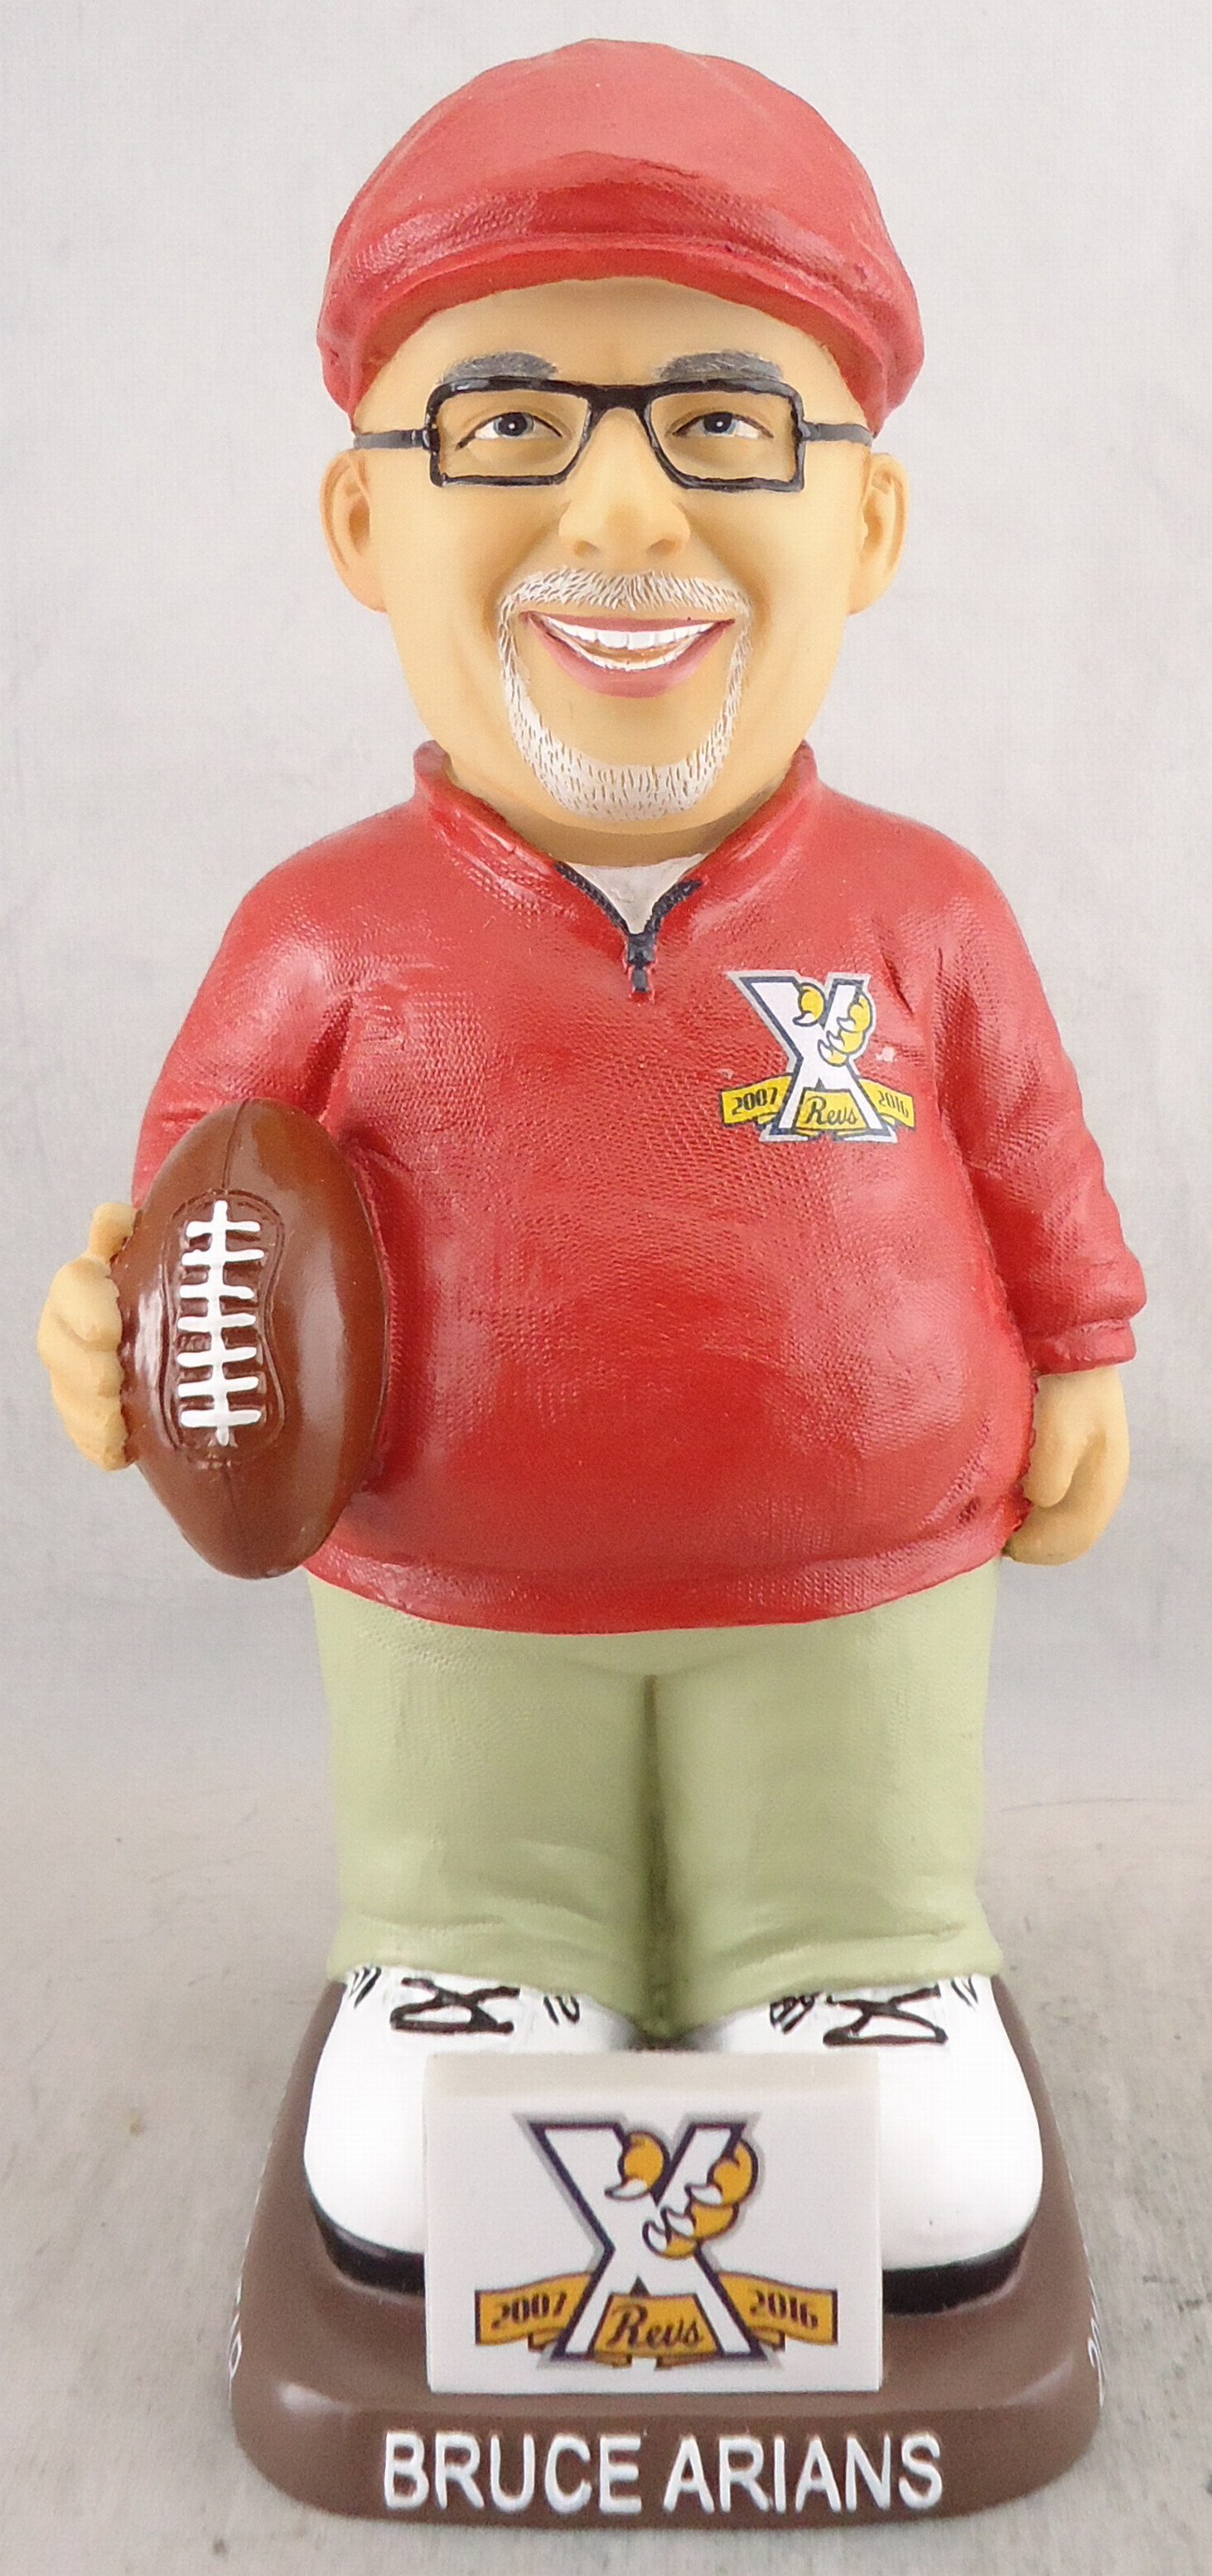 York Revolution - Bruce Arians 111897, 7in Gnome.jpg